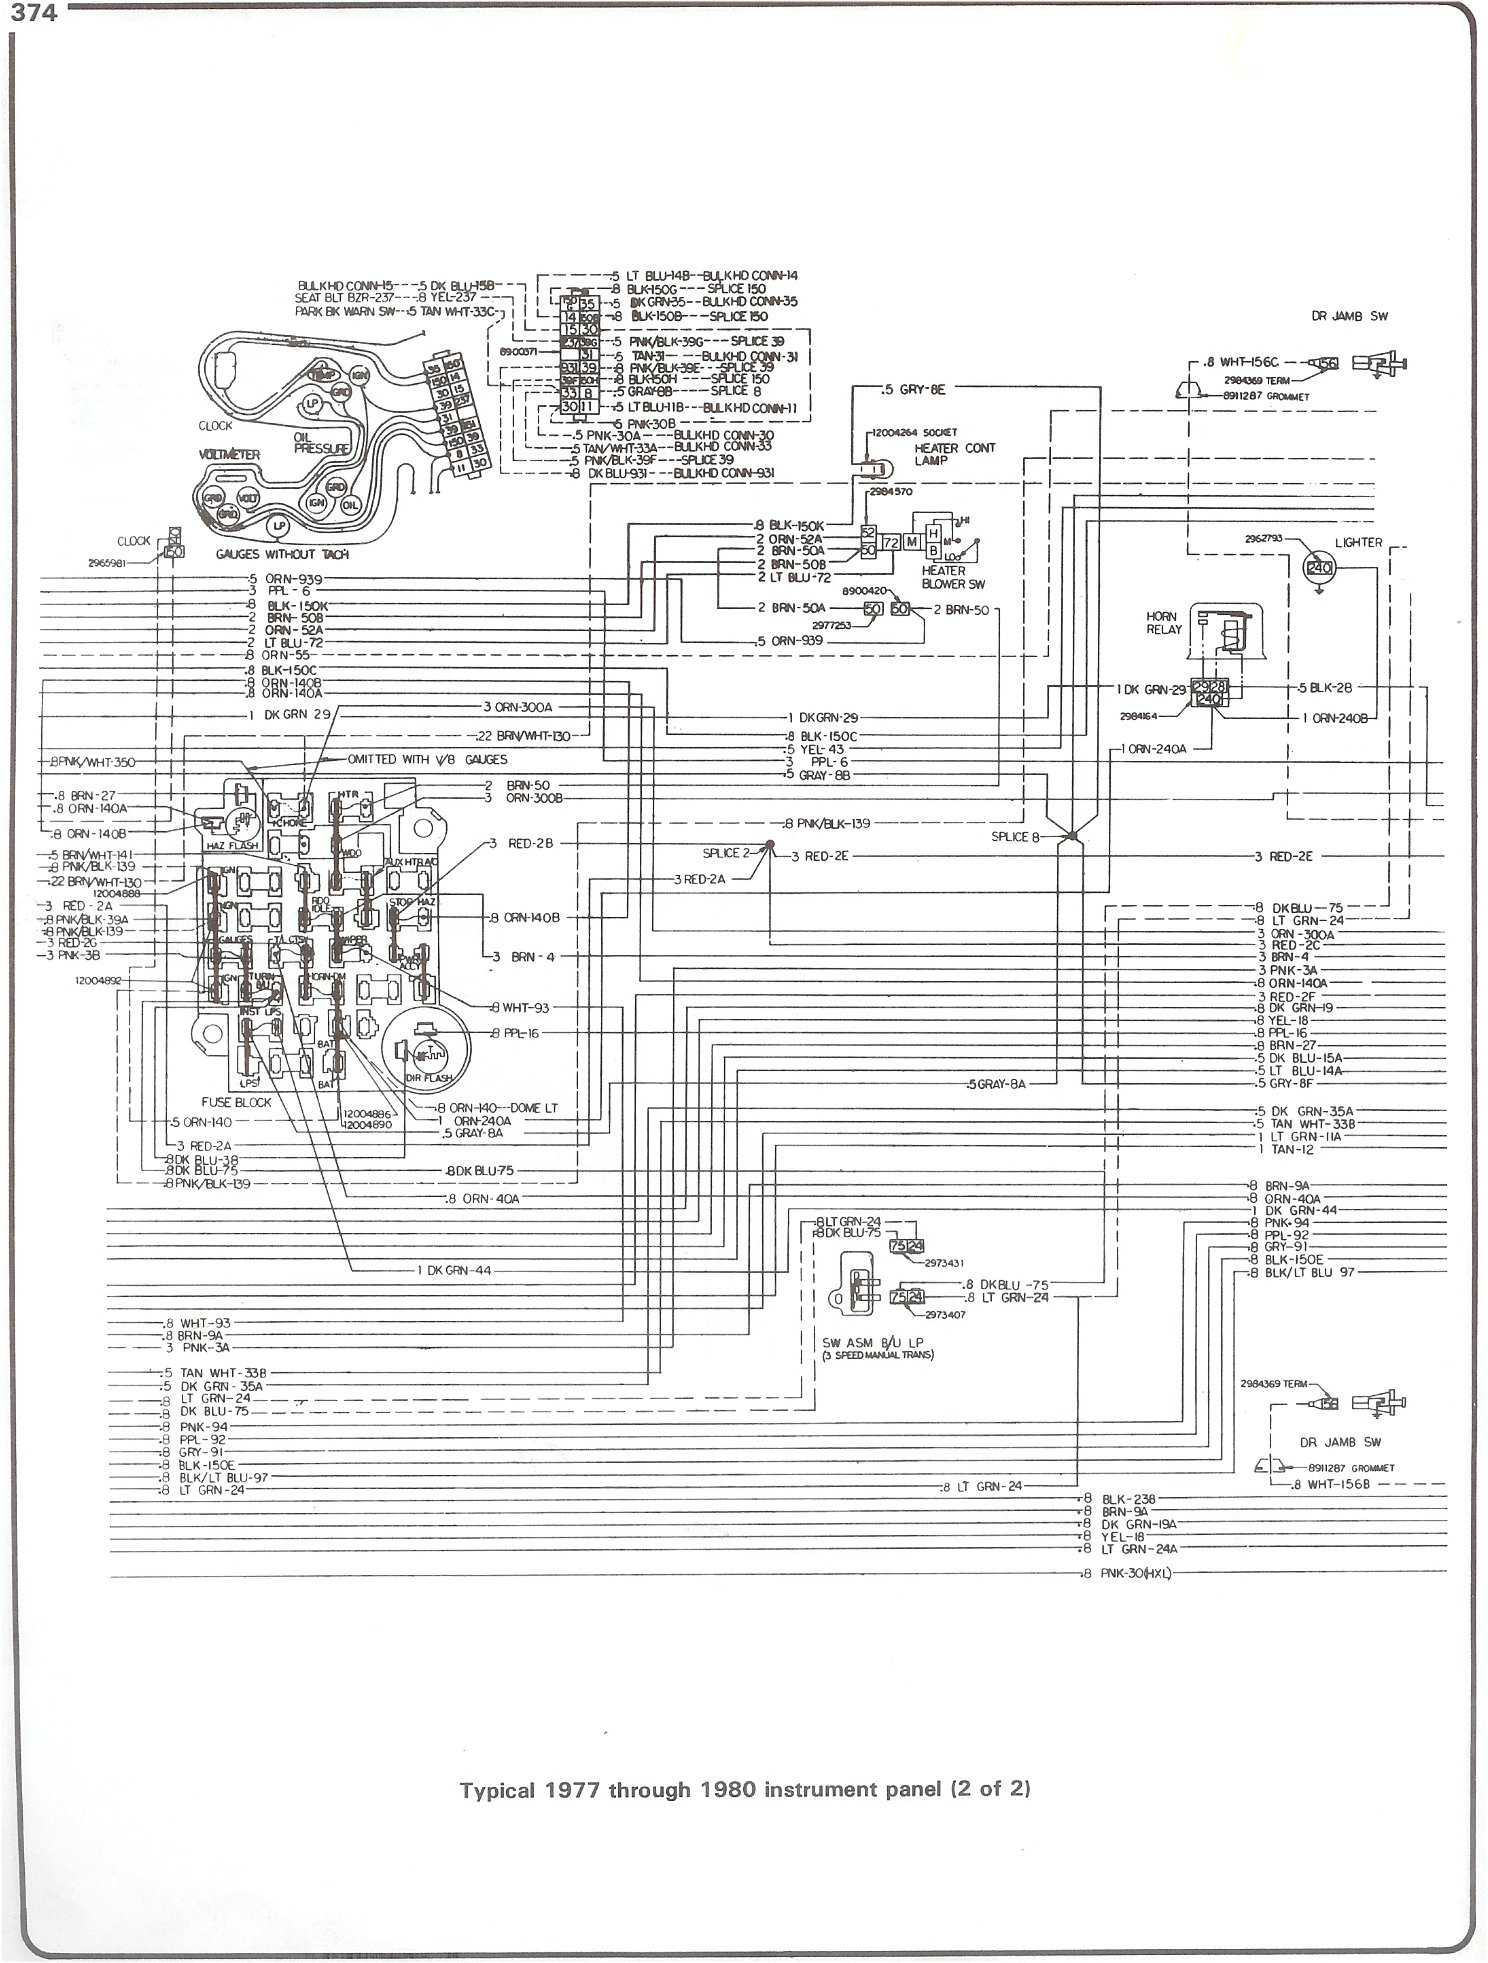 77 80_instrument_pg2 1978 chevy truck wiring diagram chevy malibu ignition wiring 1998 chevy suburban ignition wiring diagram at n-0.co